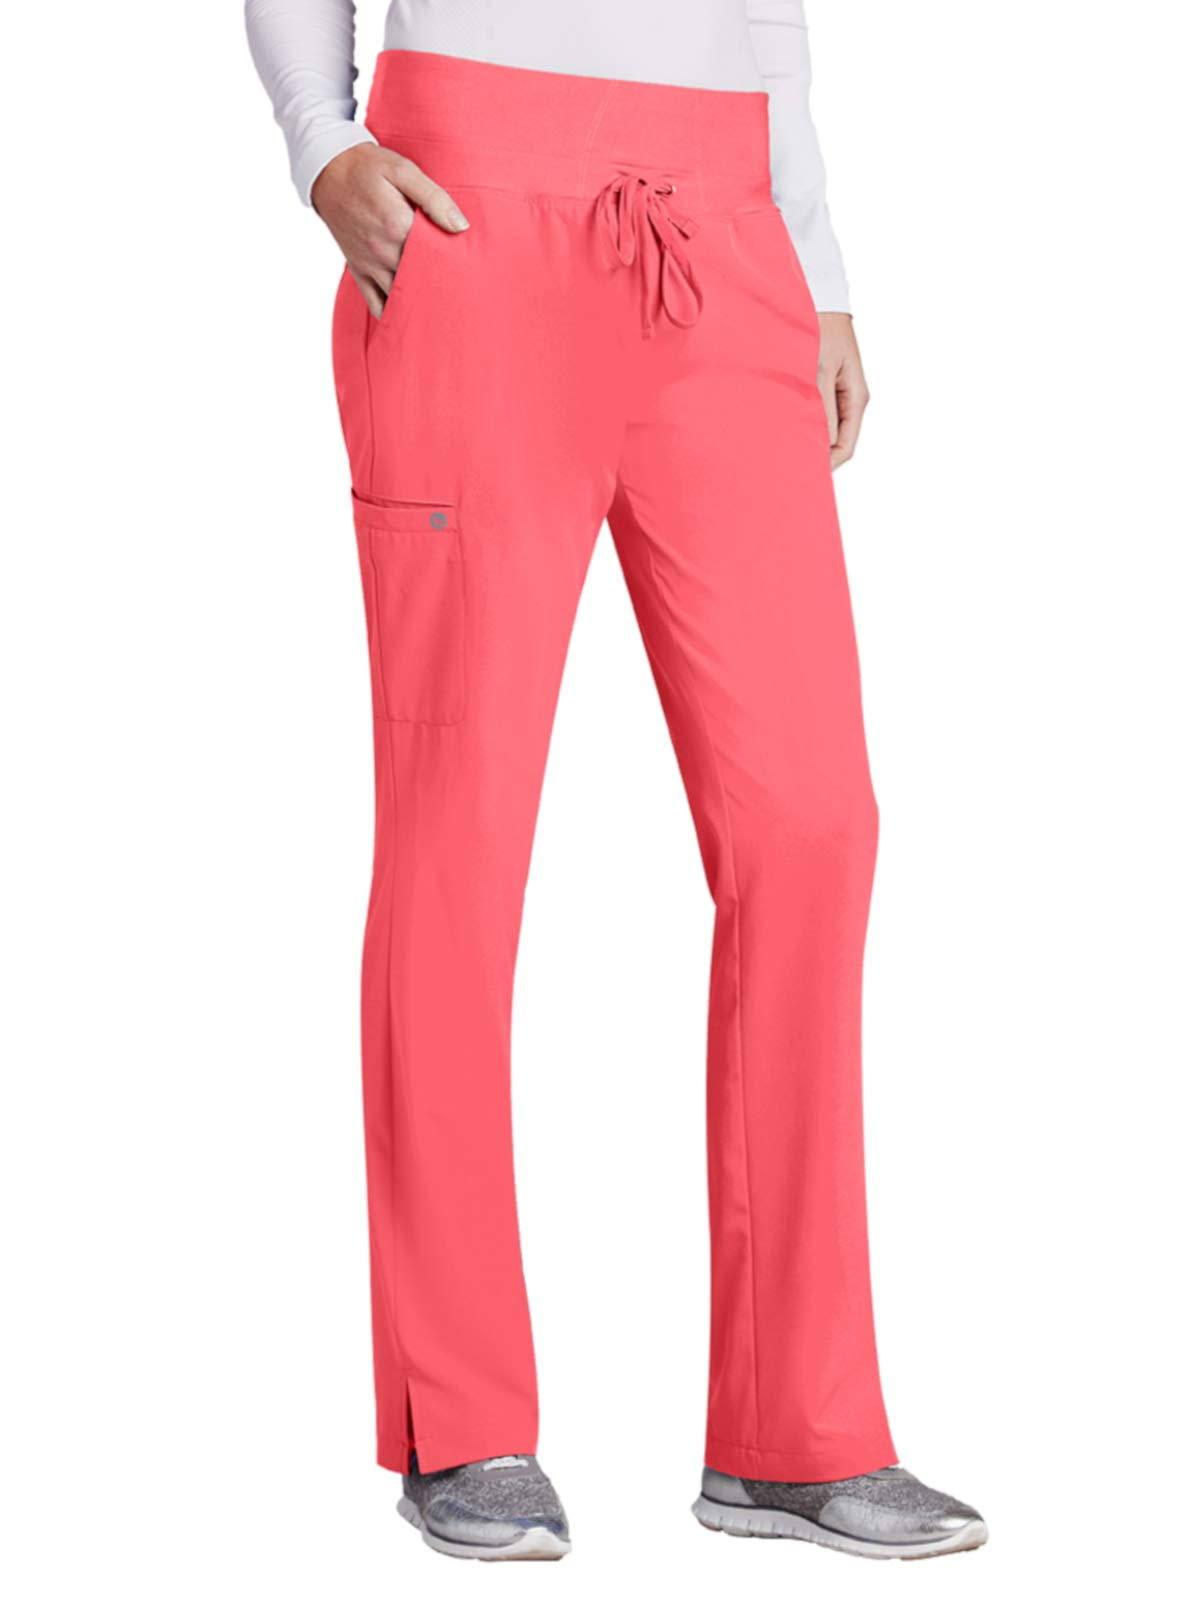 Barco One Women 5-Pocket Knit Waistband Flare Scrub Pant - Coral Reef (M)